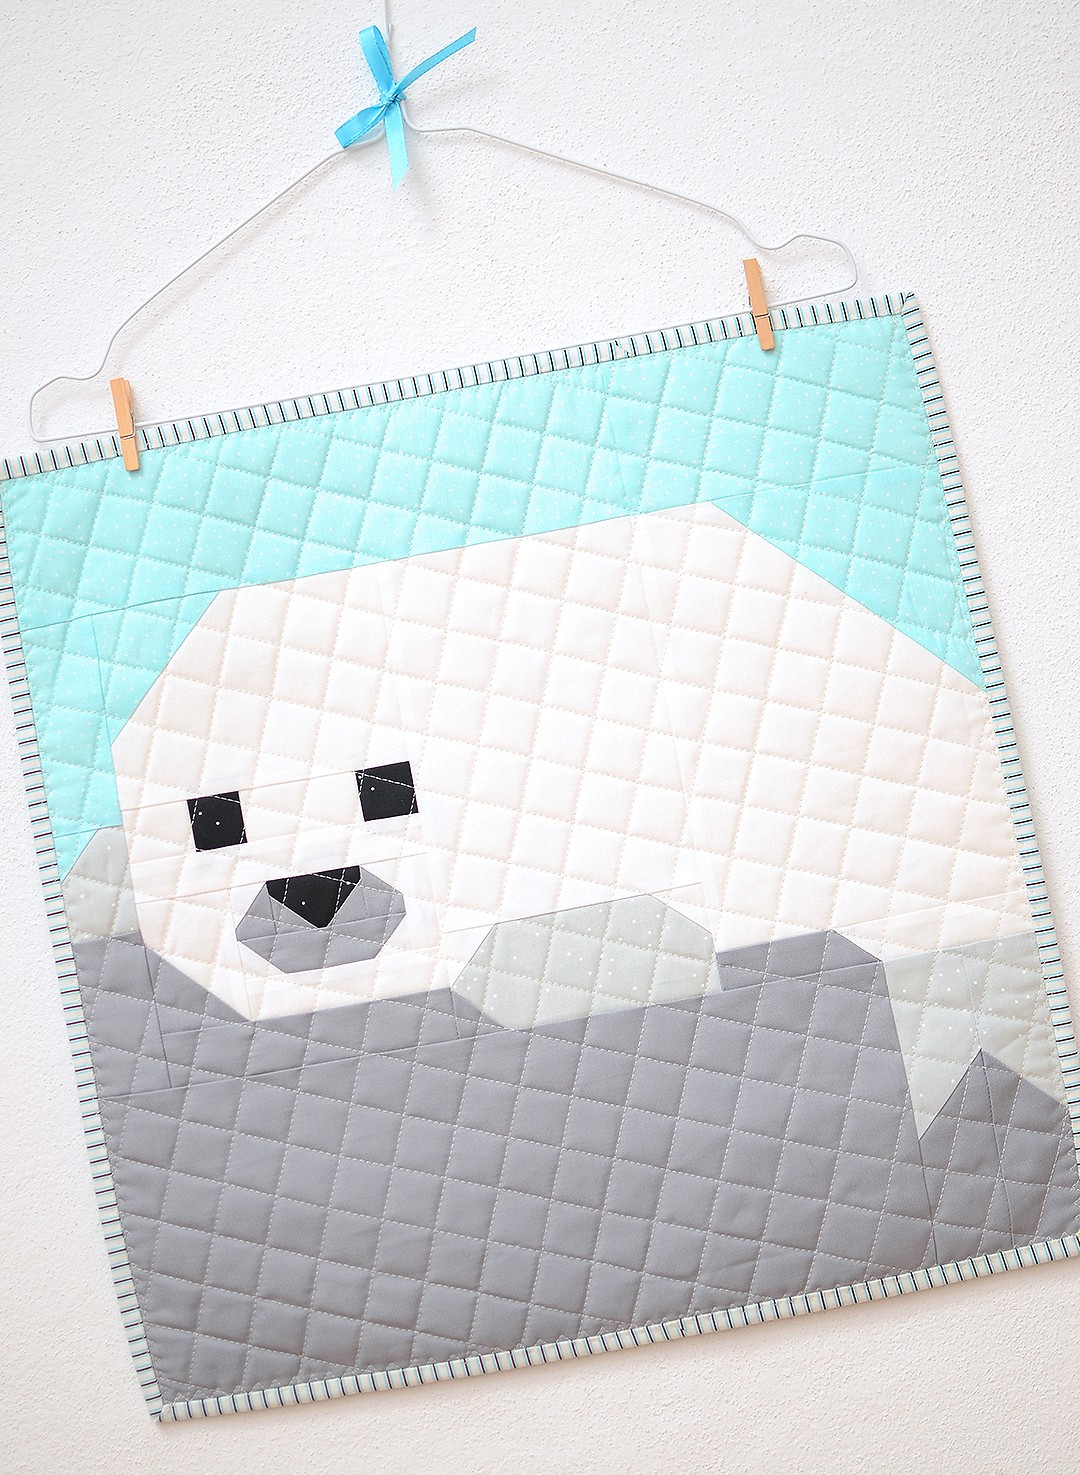 Seal Pup mini quilt on a wallhanger